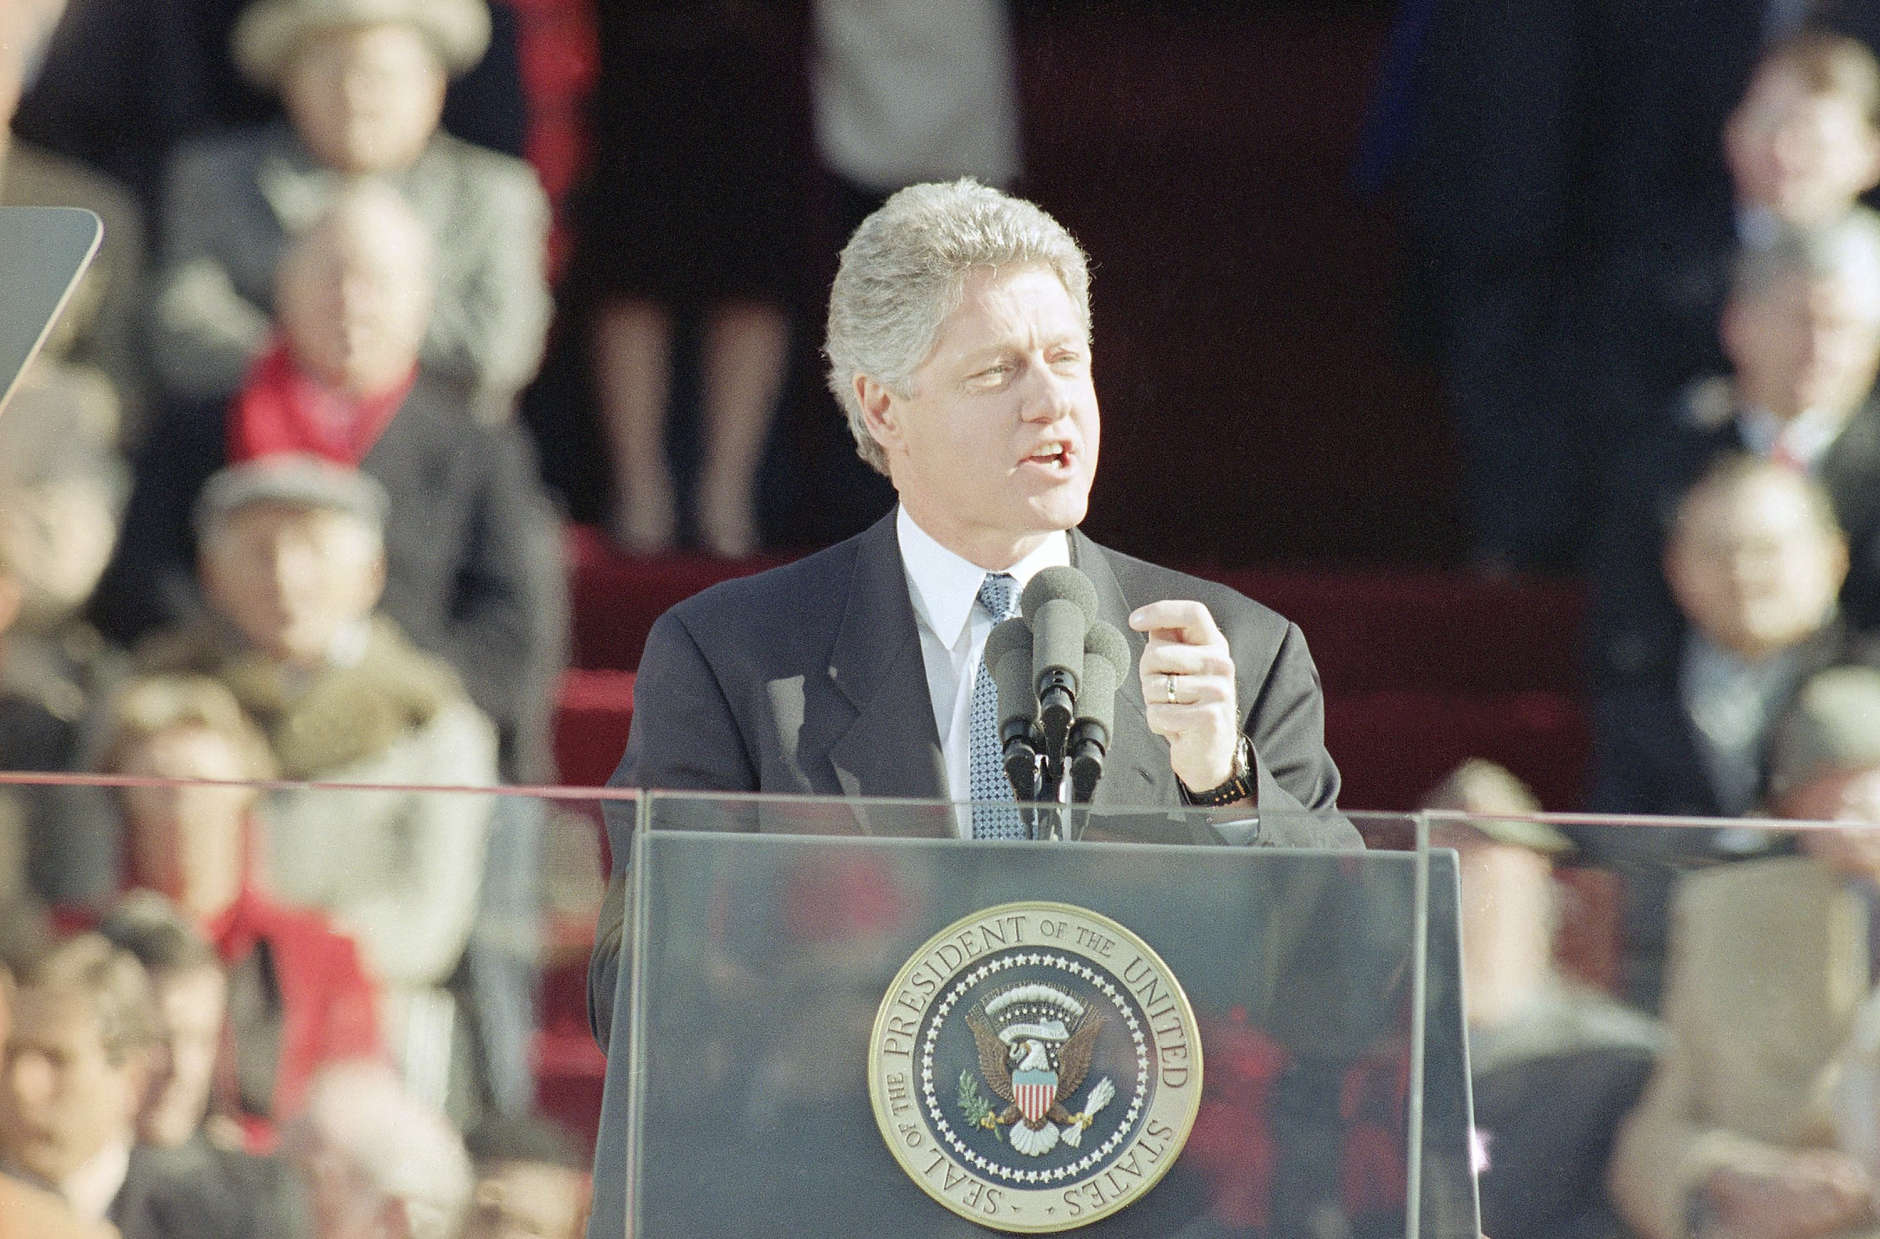 Pres. Bill Clinton delivers his inaugural address from the west steps of the Capitol during inauguration ceremonies, Wednesday, Jan. 20, 1993, Washington, D.C. Clinton is the 42nd President of the United States. (AP Photo/Ron Edmonds)